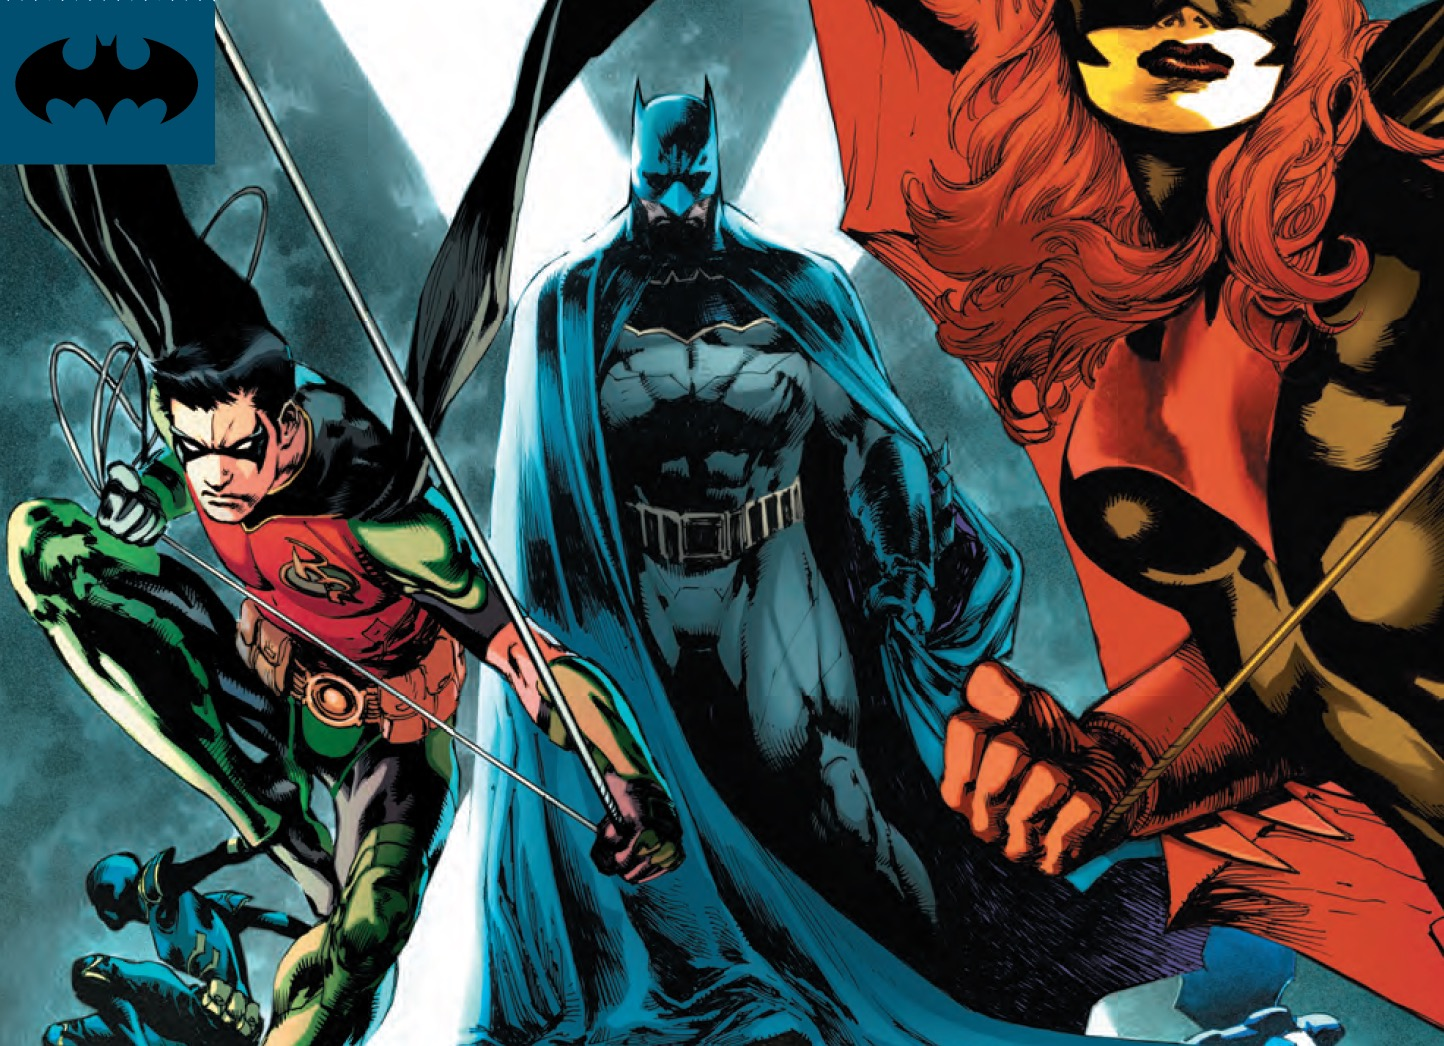 Detective Comics #981 review: James Tynion IV ends his run in an emotionally satisfying chapter